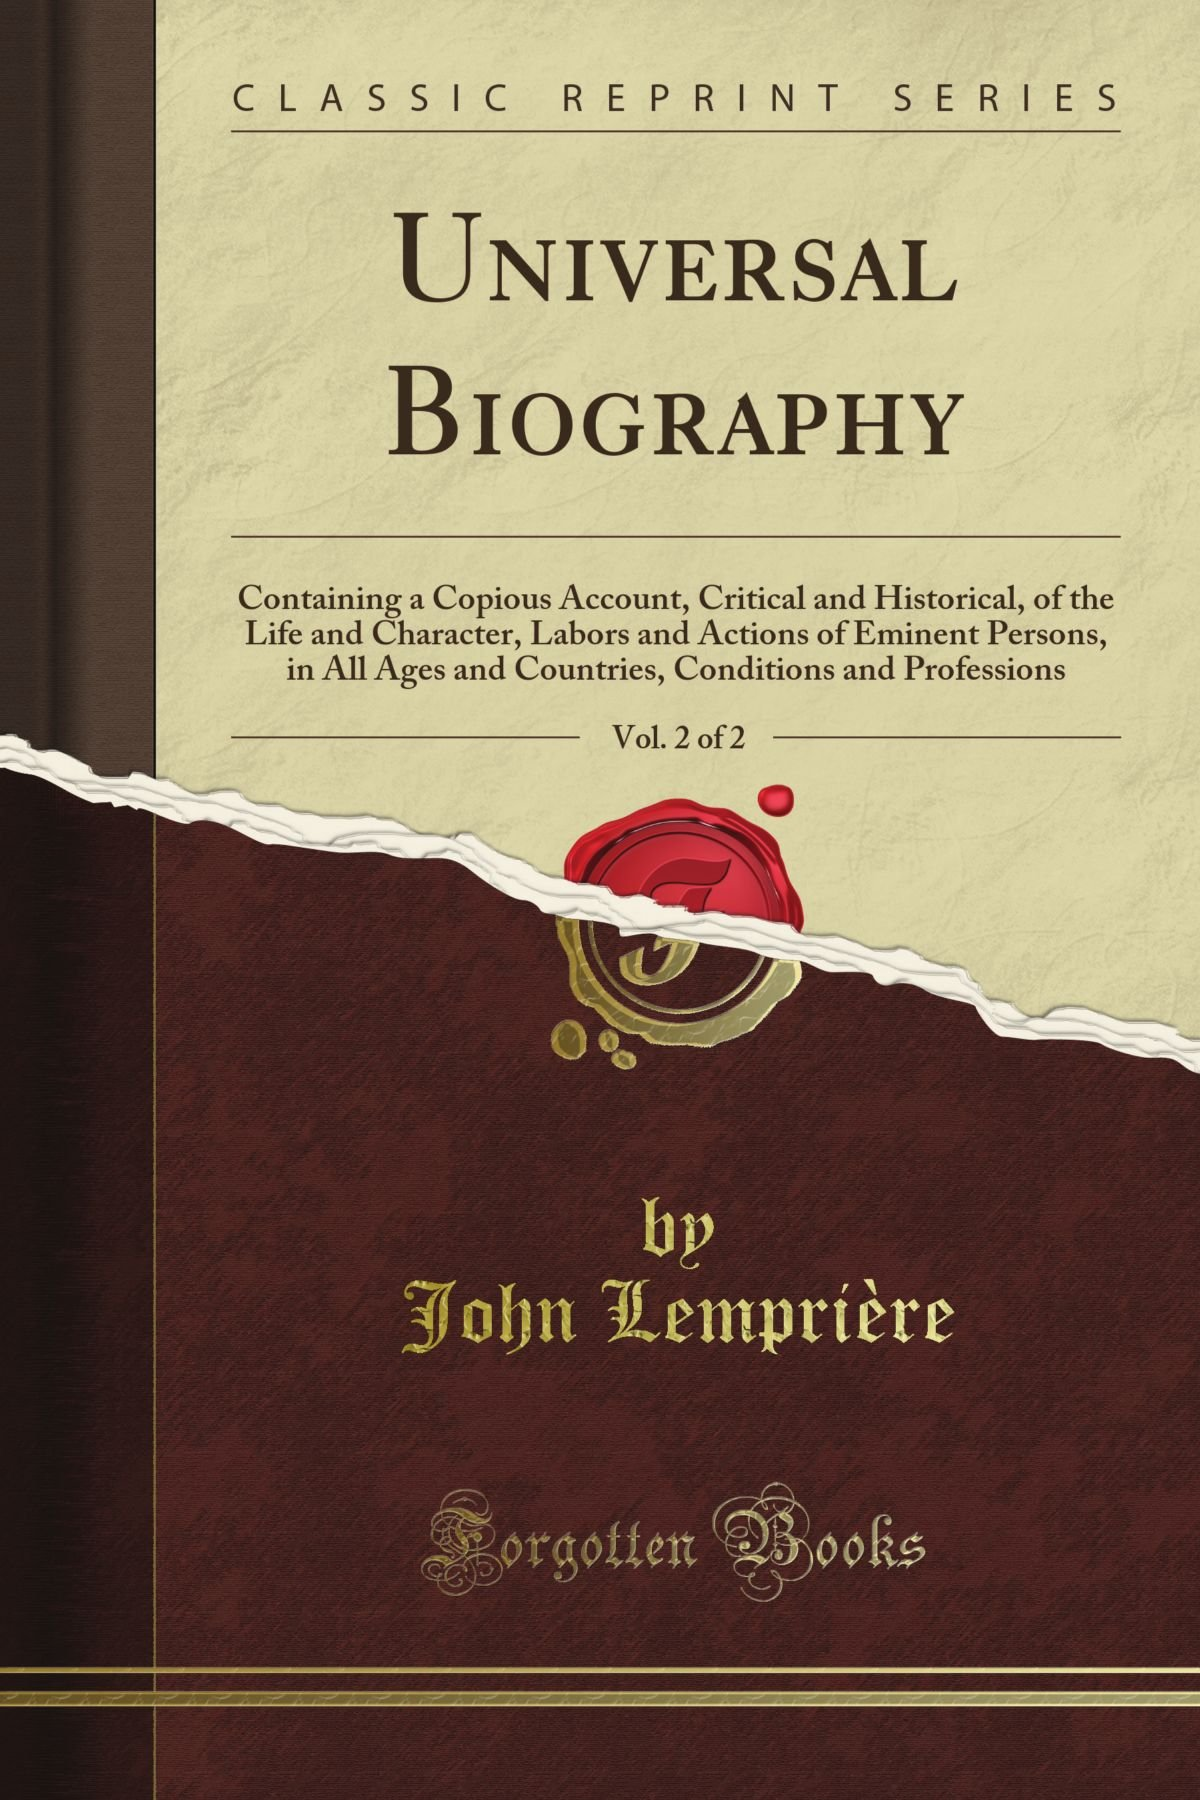 Universal Biography: Containing a Copious Account, Critical and Historical, of the Life and Character, Labors and Actions of Eminent Persons, in All ... Professions, Vol. 2 of 2 (Classic Reprint) PDF ePub fb2 ebook